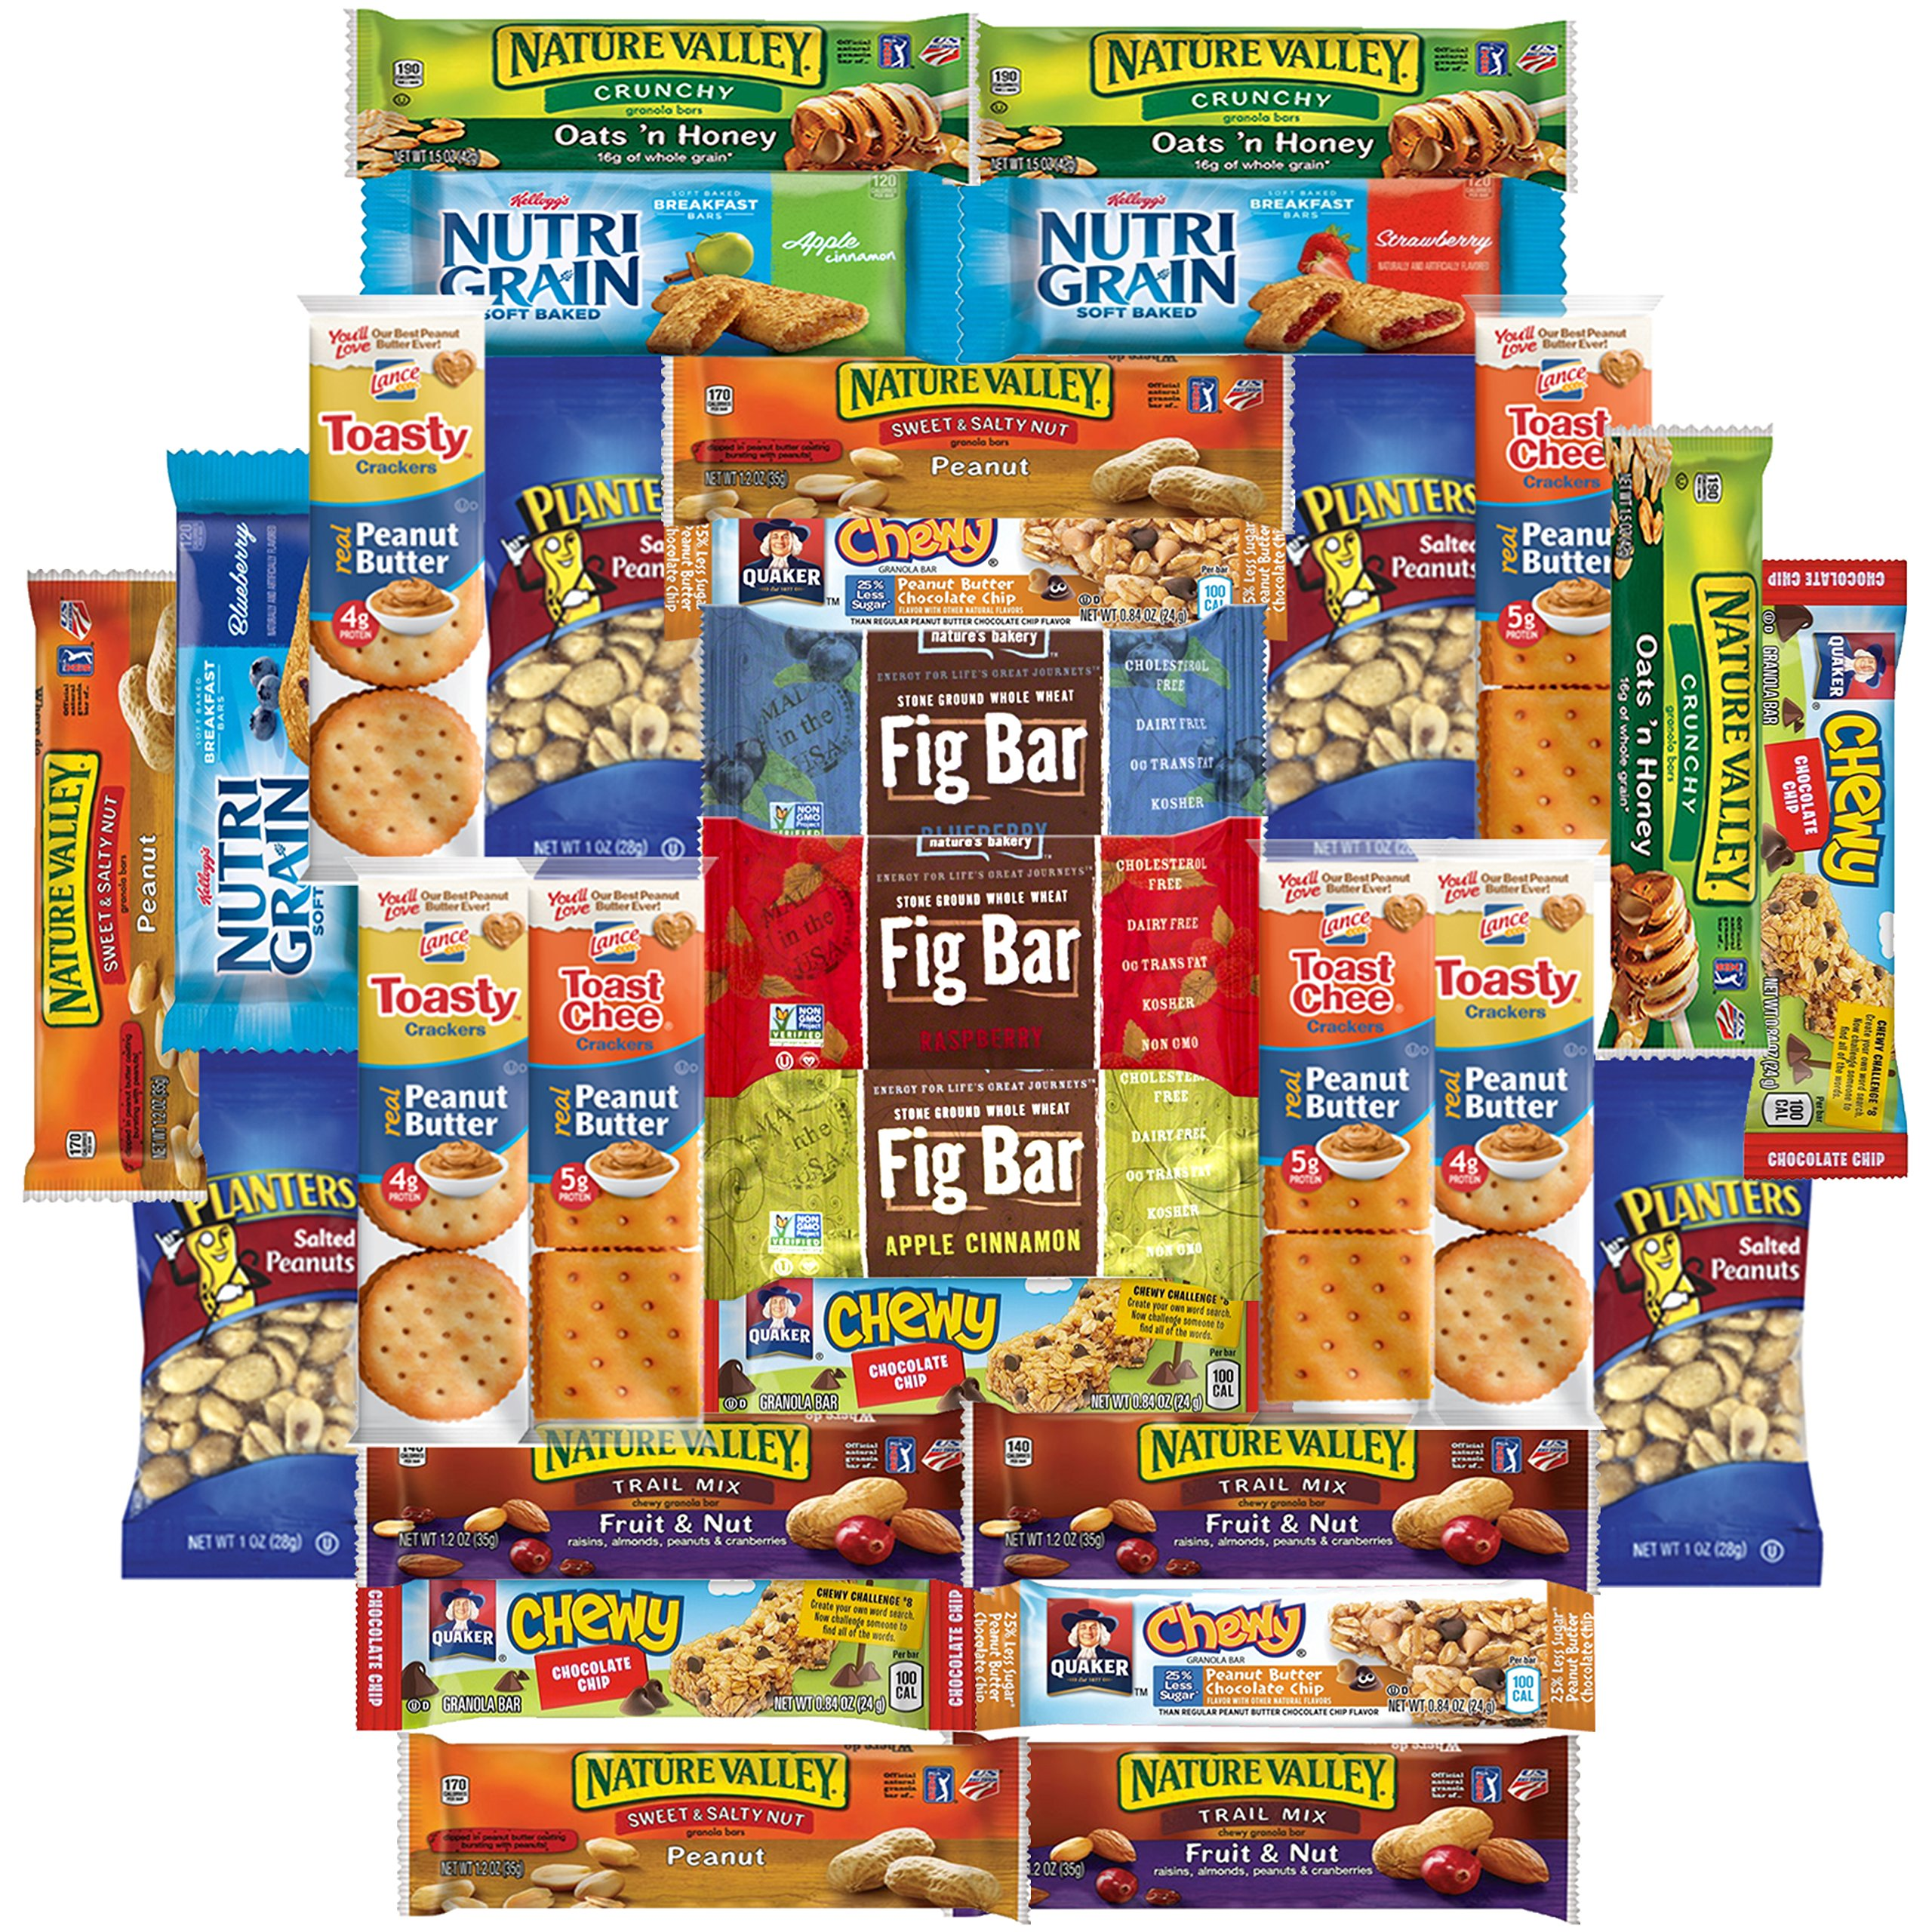 Healthy Bars, Crackers & Nuts Care Package Bulk Sampler Variety Pack Includes Nature Valley, Nutri Grain, Quaker Chewy, Fig Bars, Planters Peanuts & More (30 Count) by Snack Chest